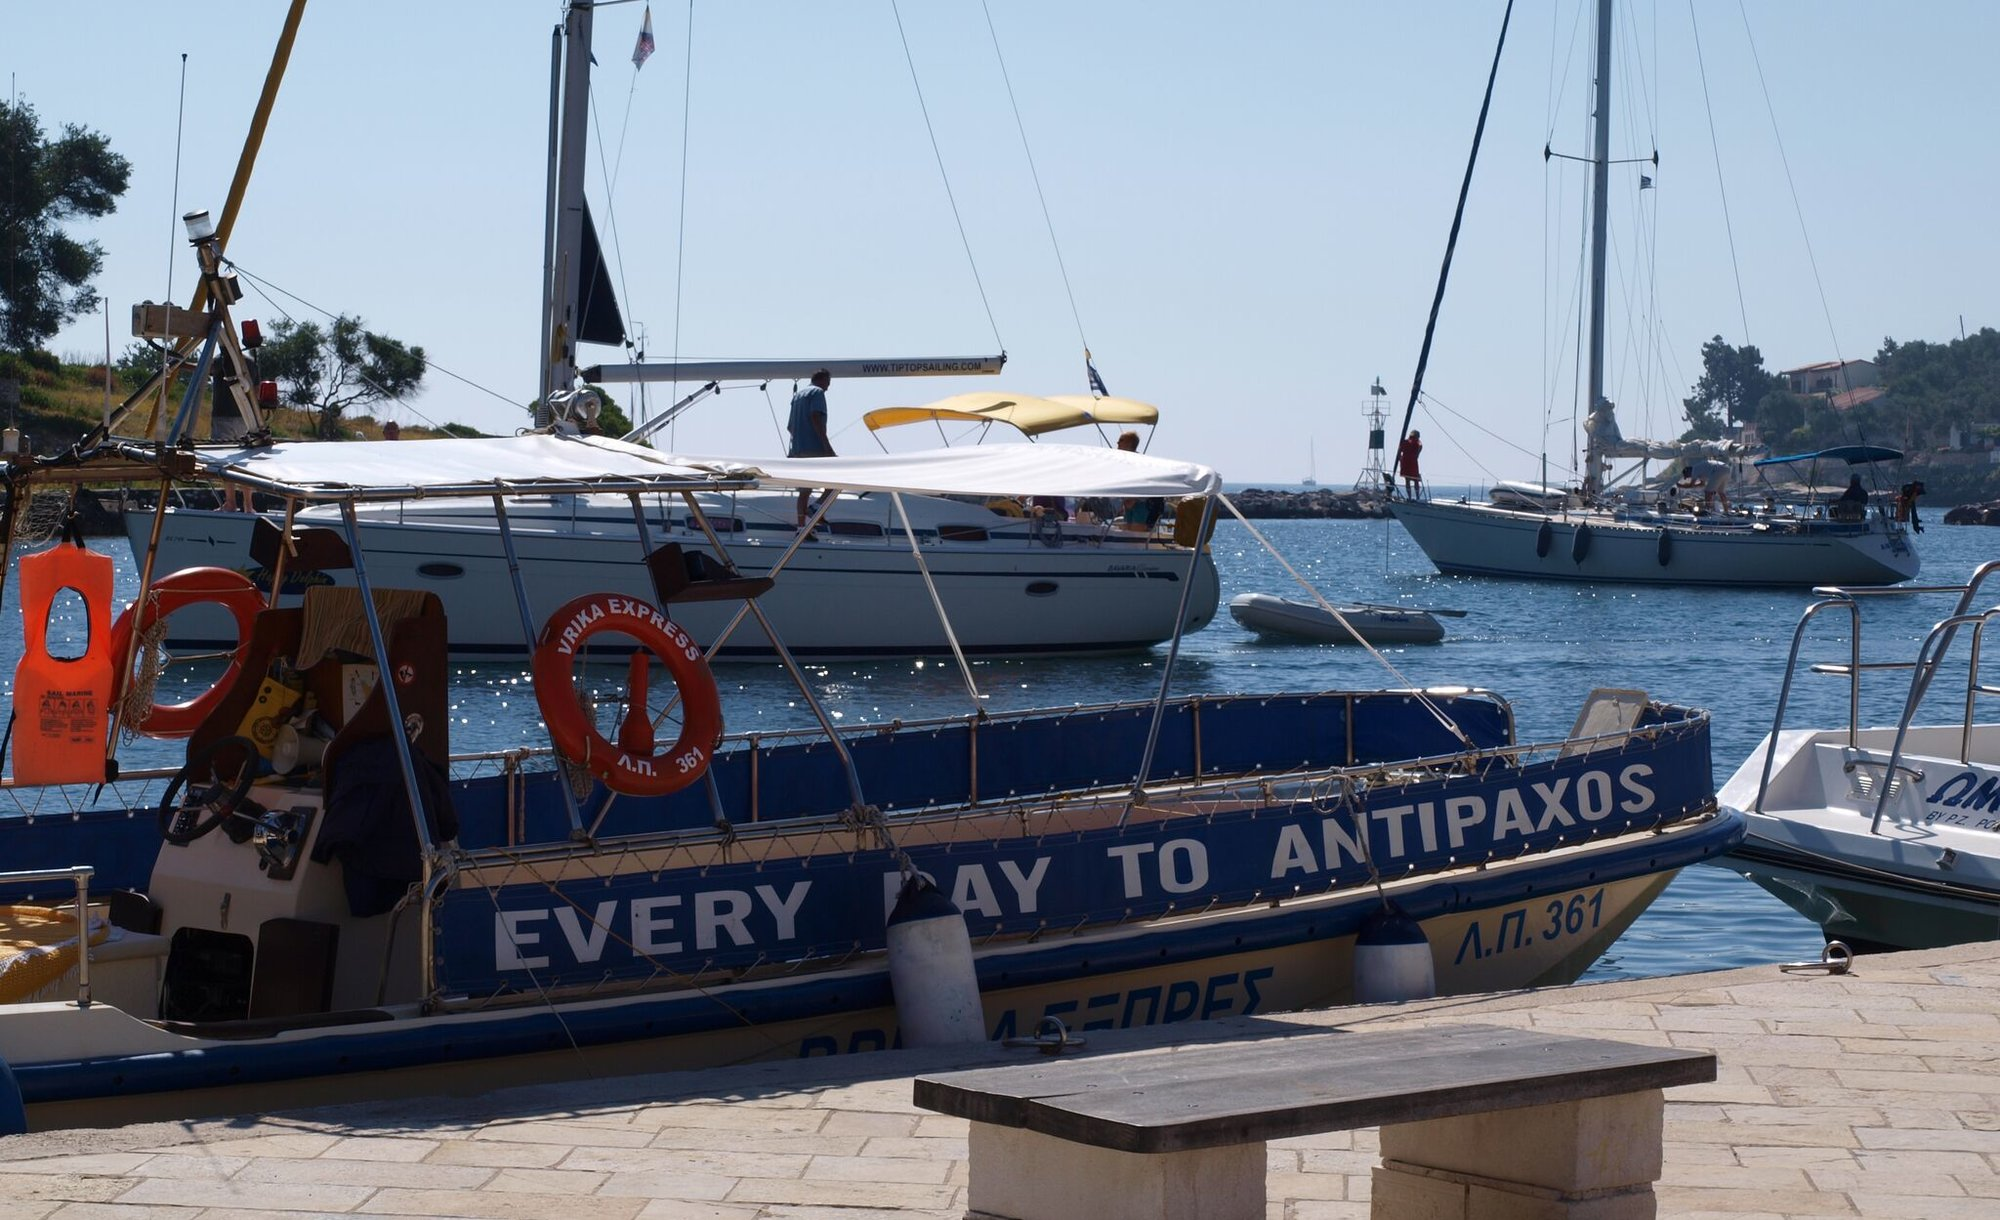 AntiPaxos seataxi